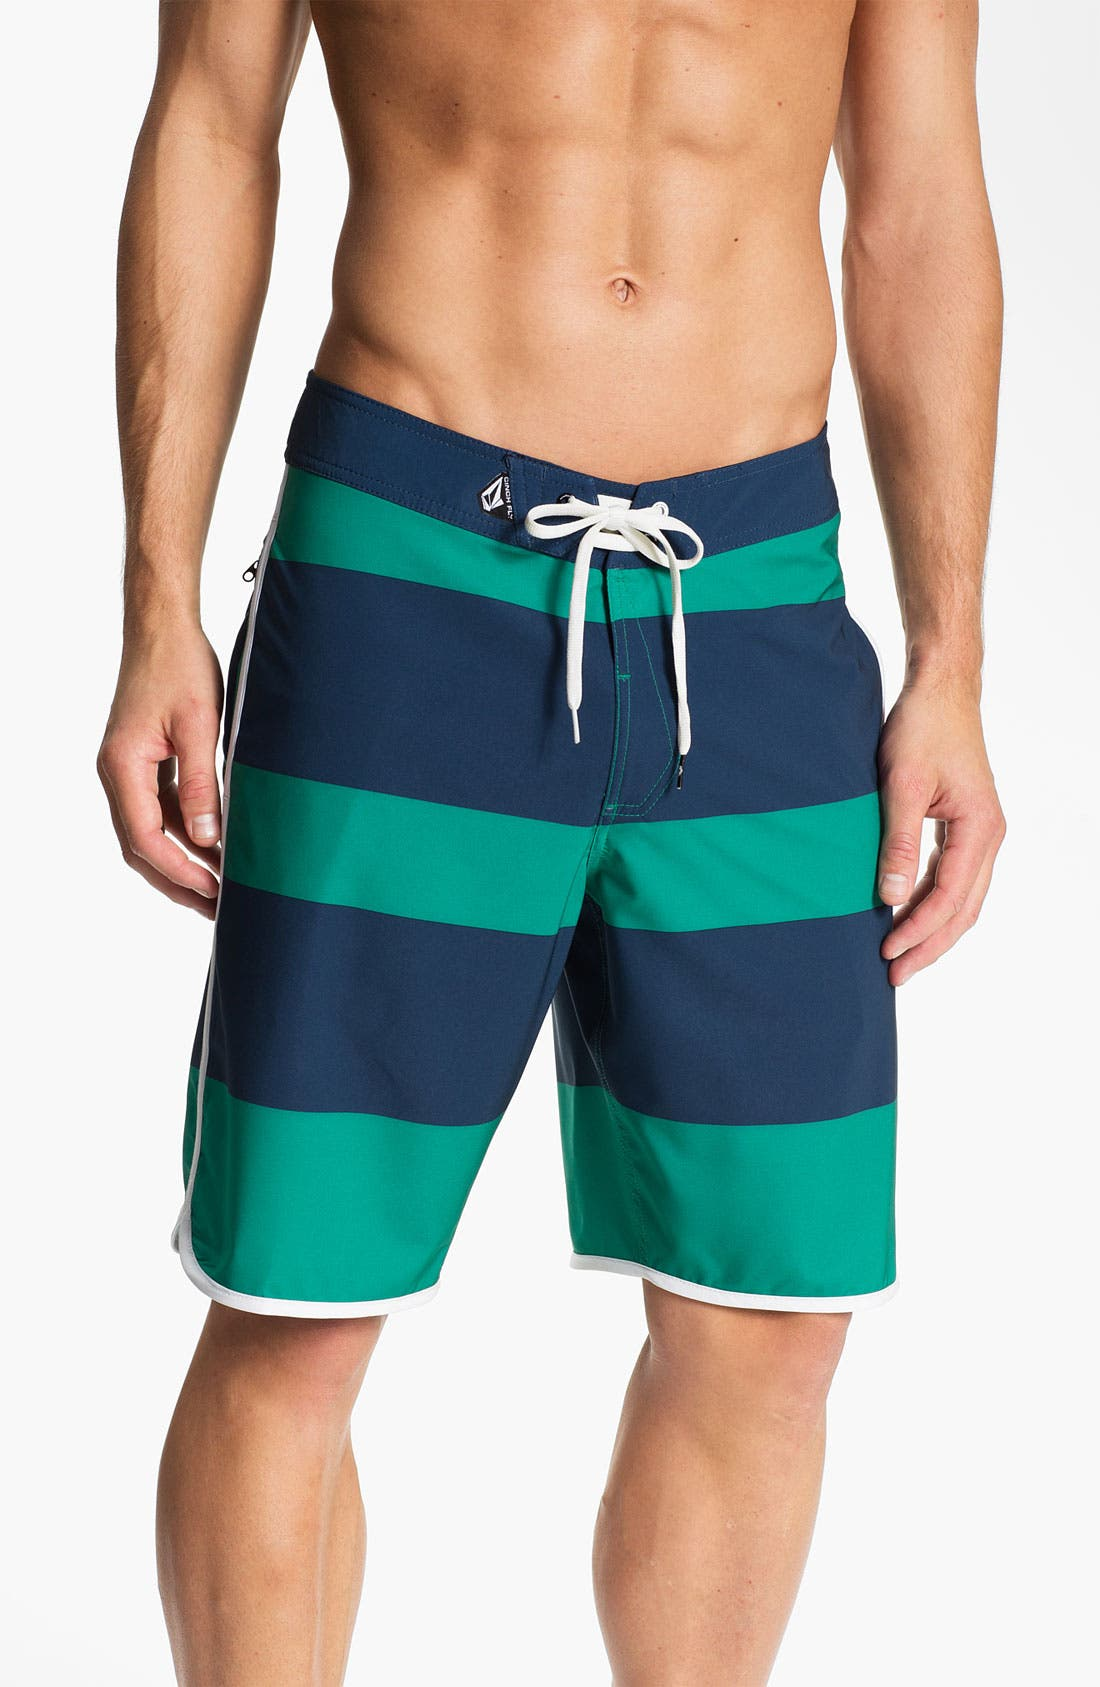 Alternate Image 1 Selected - Volcom 'Scallop' Board Shorts